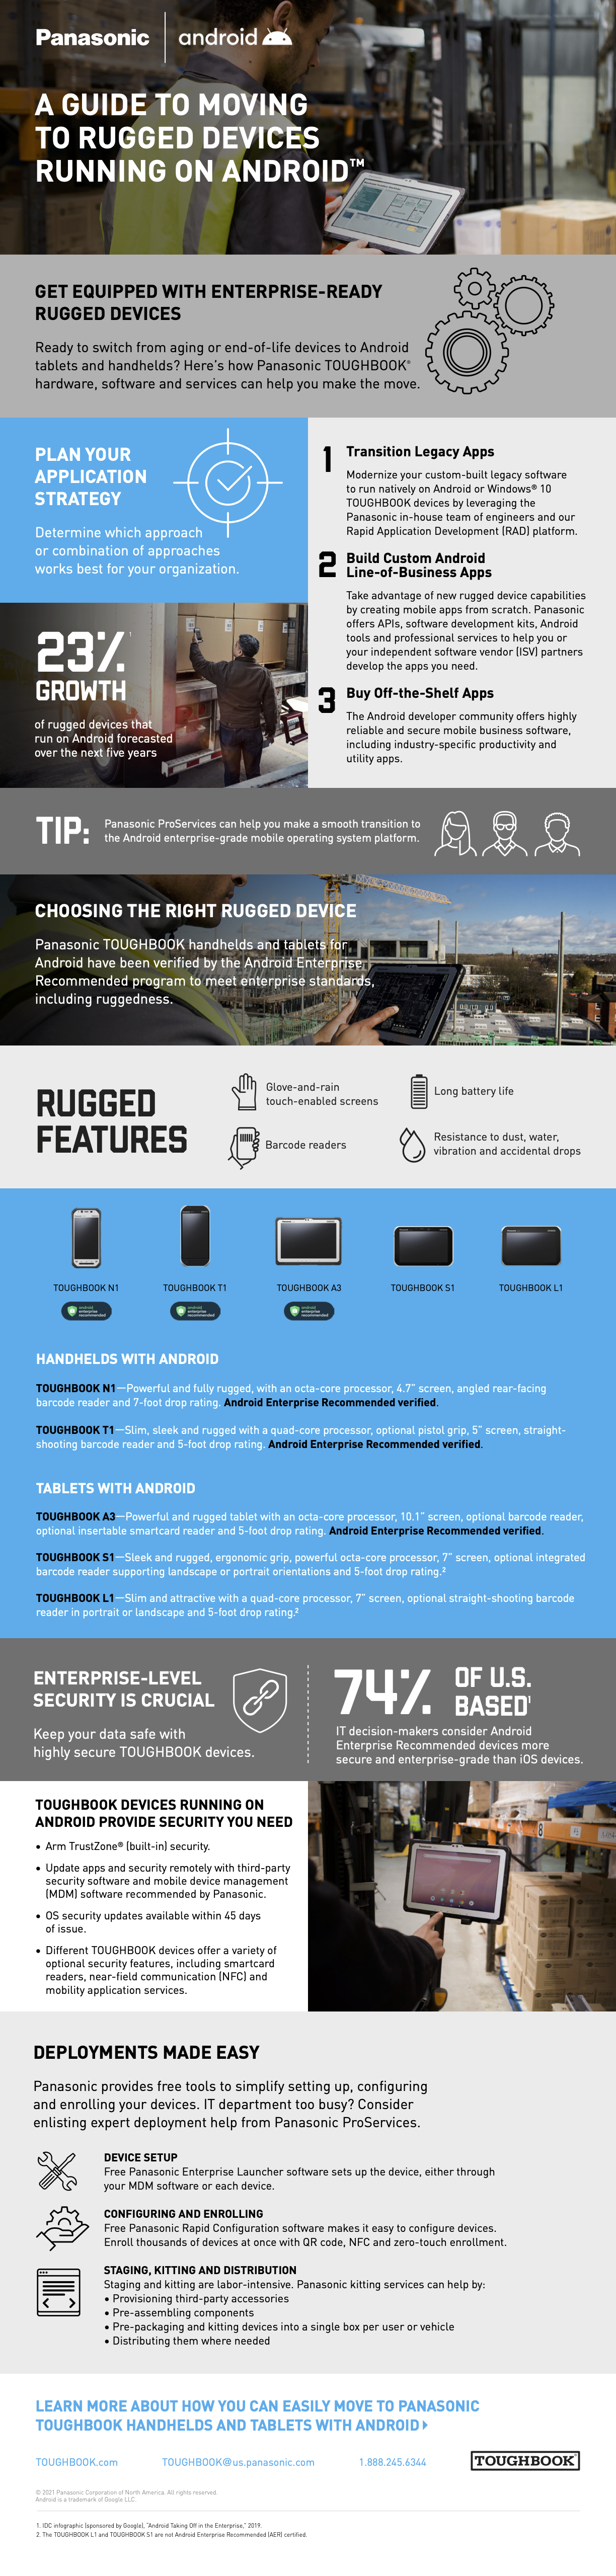 Moving_To_Android_Infographic - Panasonic TOUGHBOOK (1).png